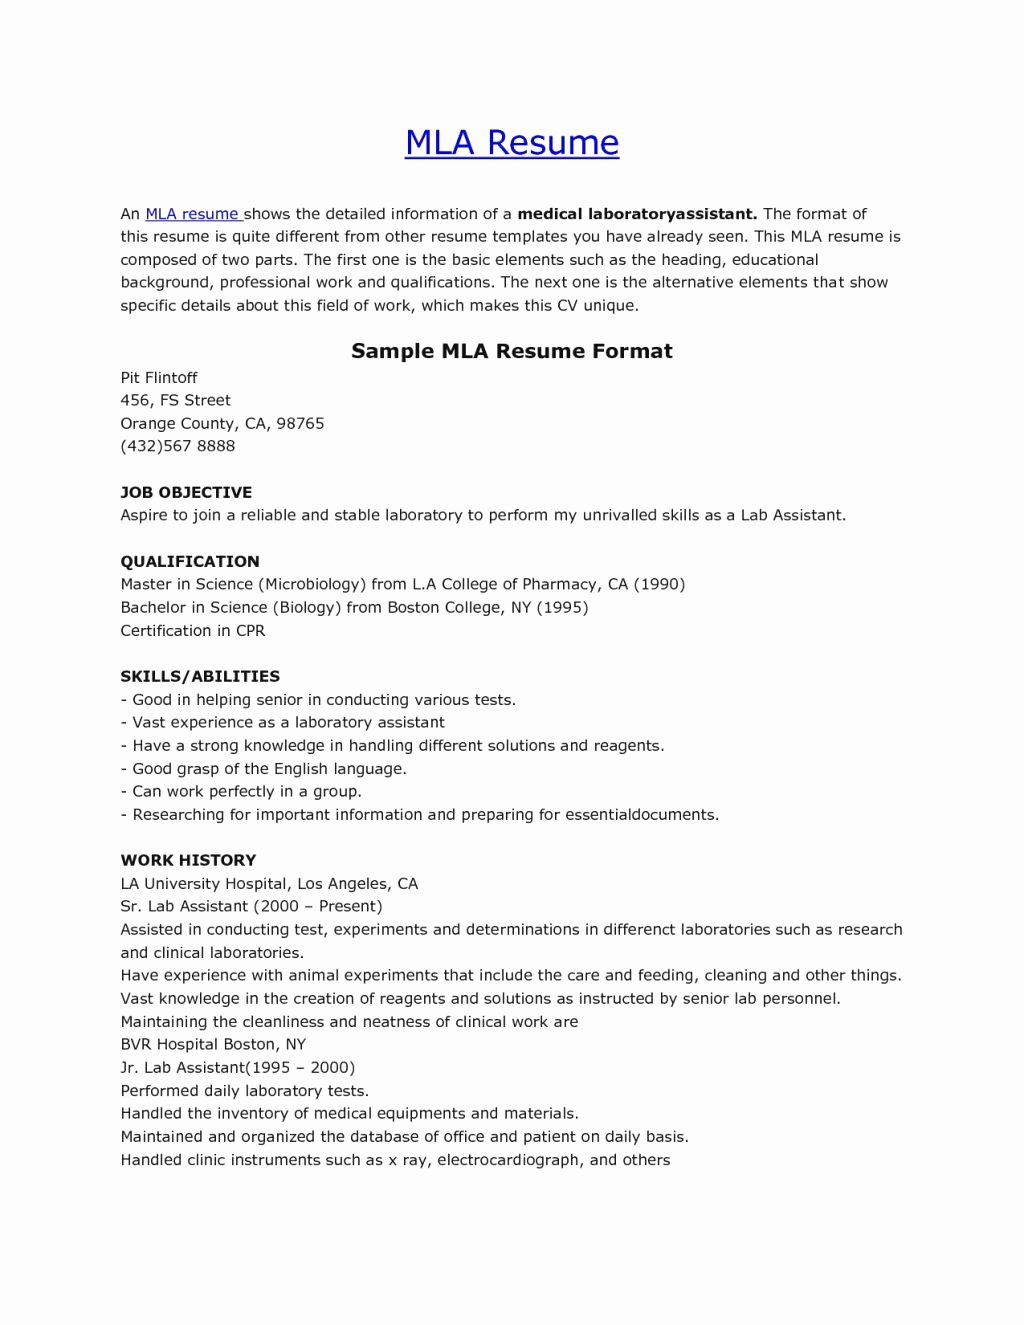 Mla format Template Download Best Of Mla Resume format Pelosleclaire